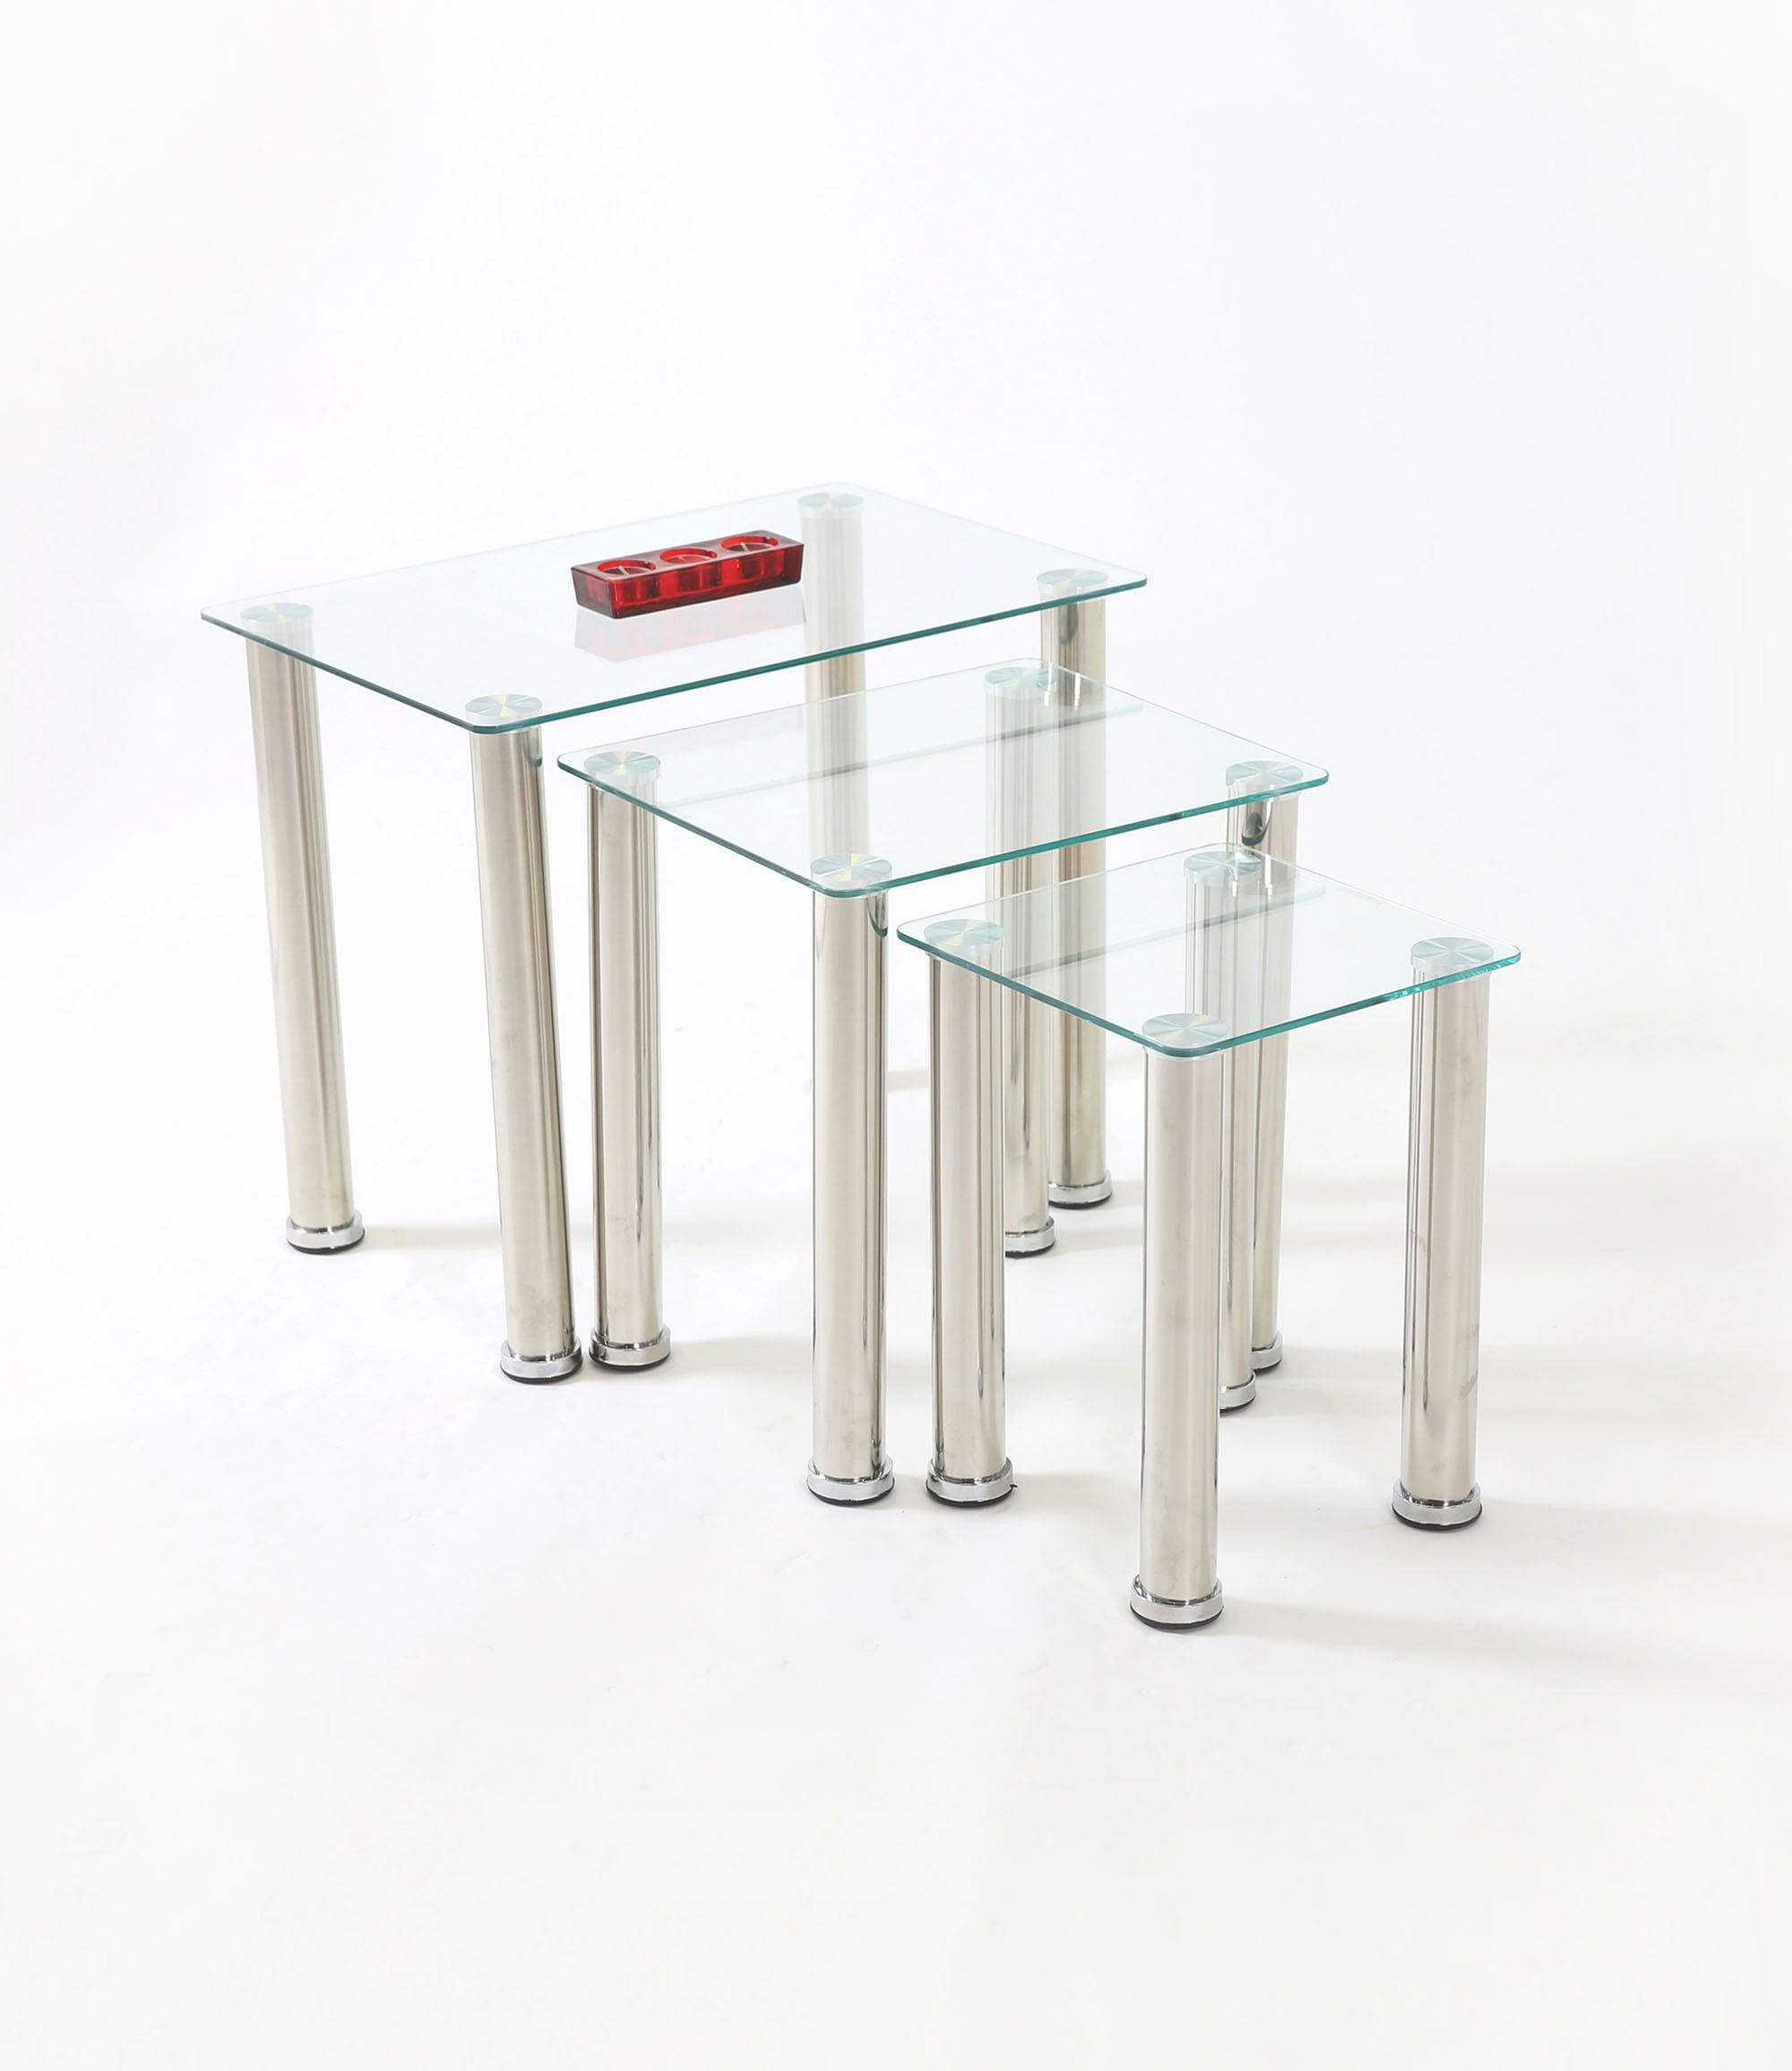 Crystal Clear Glass Nest Of Tables The Tempered Safety Glass Table Tops And Chrome Fittings And Supports Giv Glass Nesting Tables Glass Top Table Clear Glass